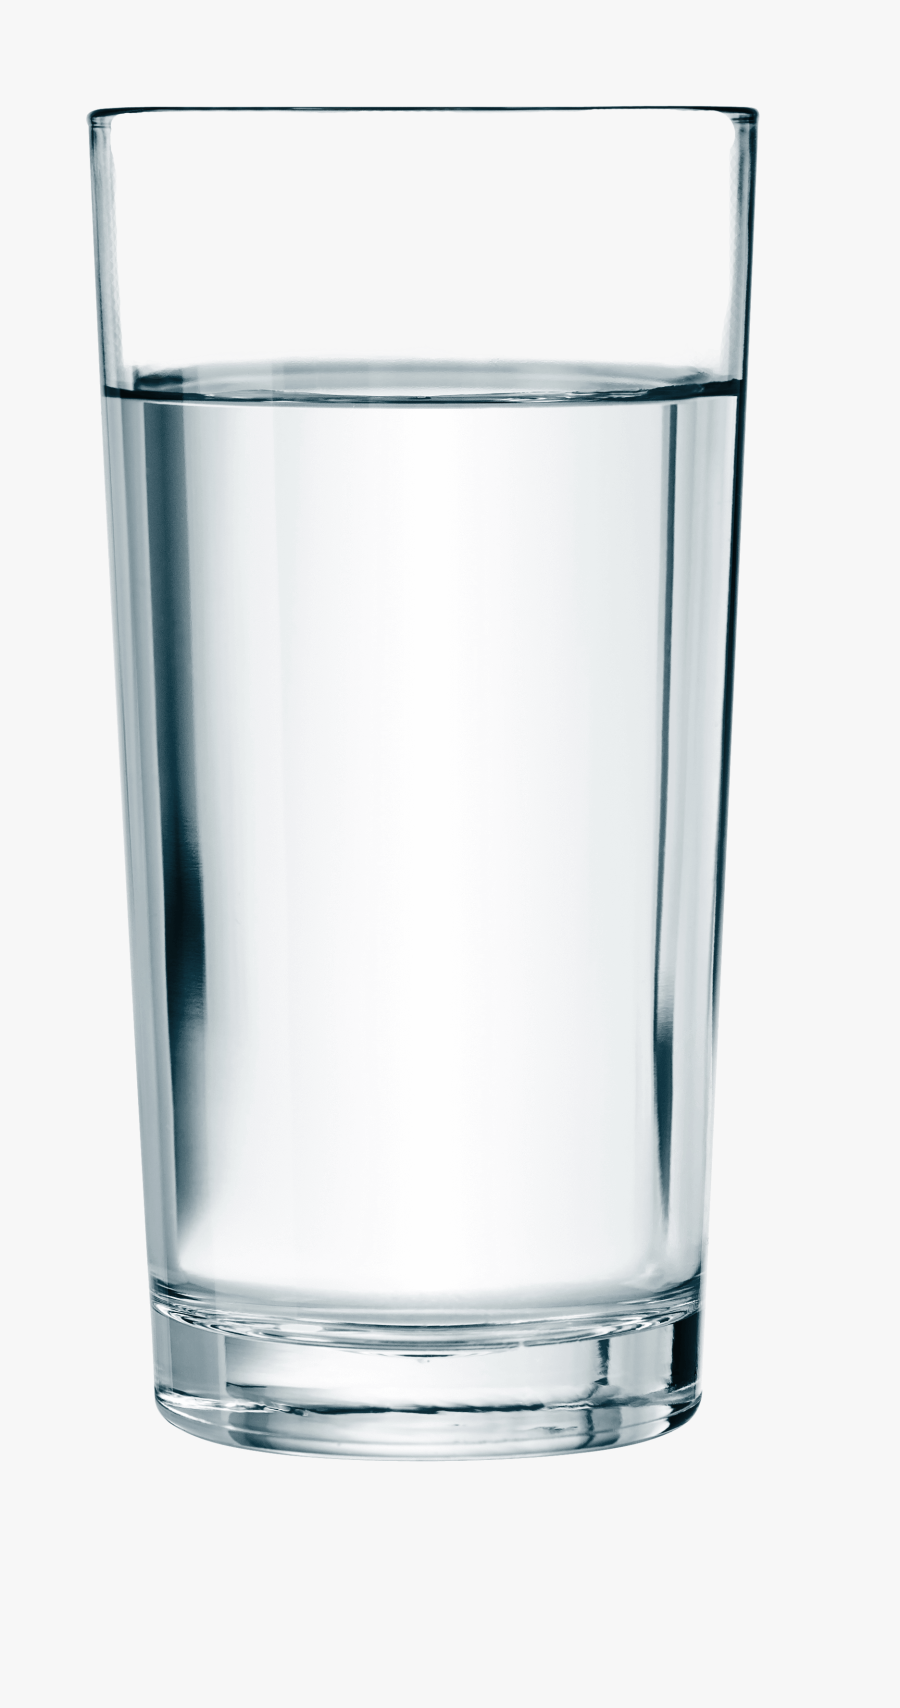 Cup Glass Drinking Water - Old Fashioned Glass, Transparent Clipart